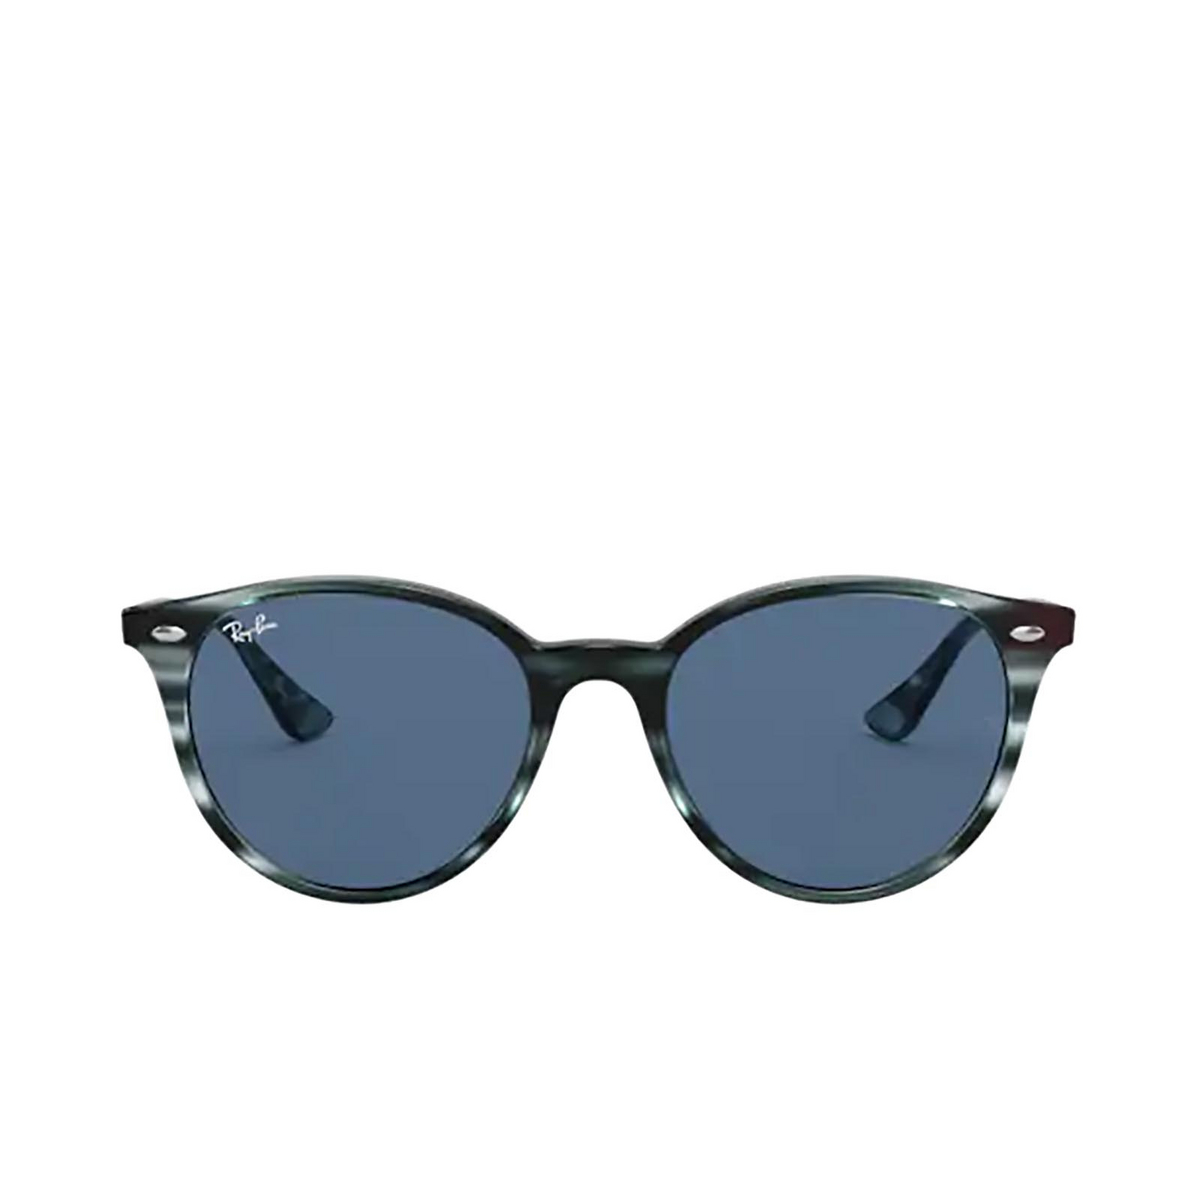 Ray-Ban® Round Sunglasses: RB4305 color Striped Blue Havana 643280 - 1/3.